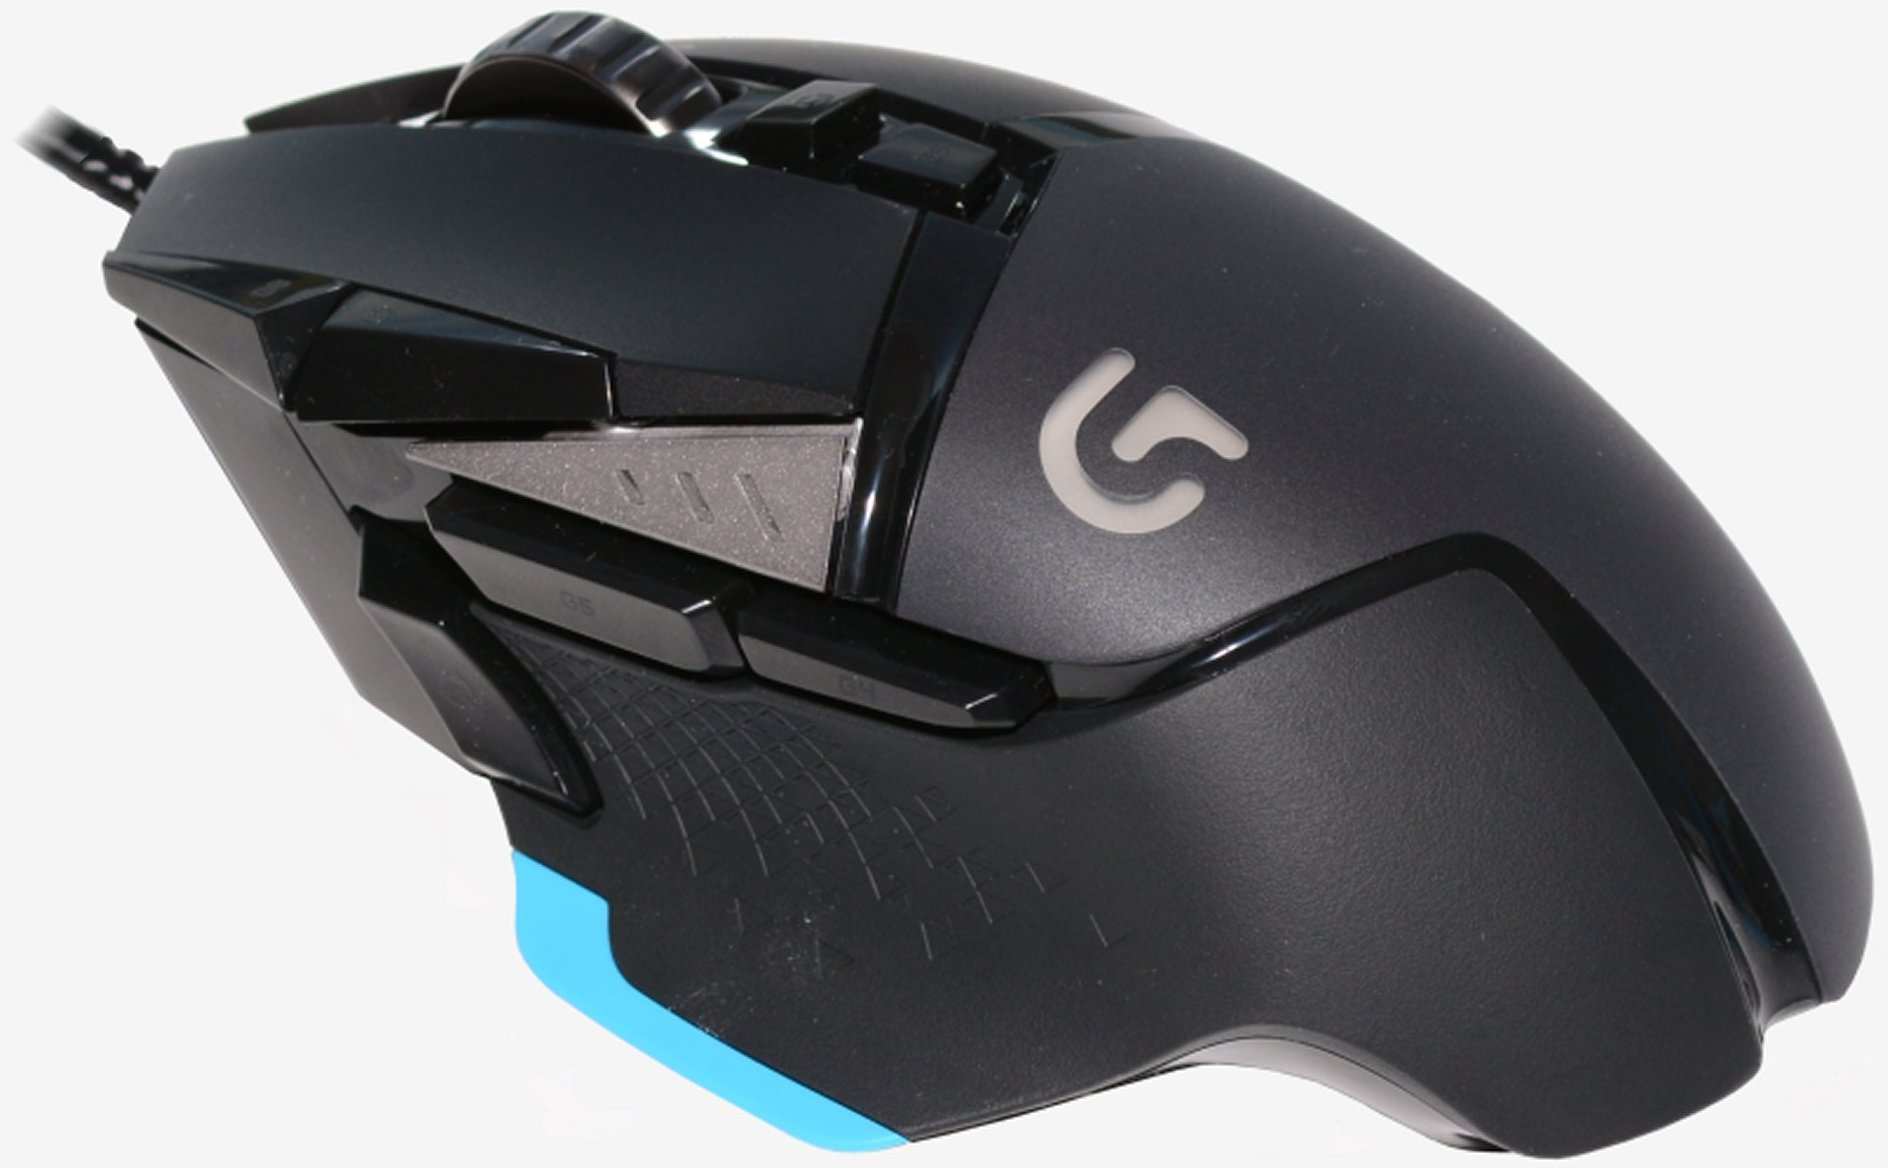 G502 Tunable Gaming Mouse